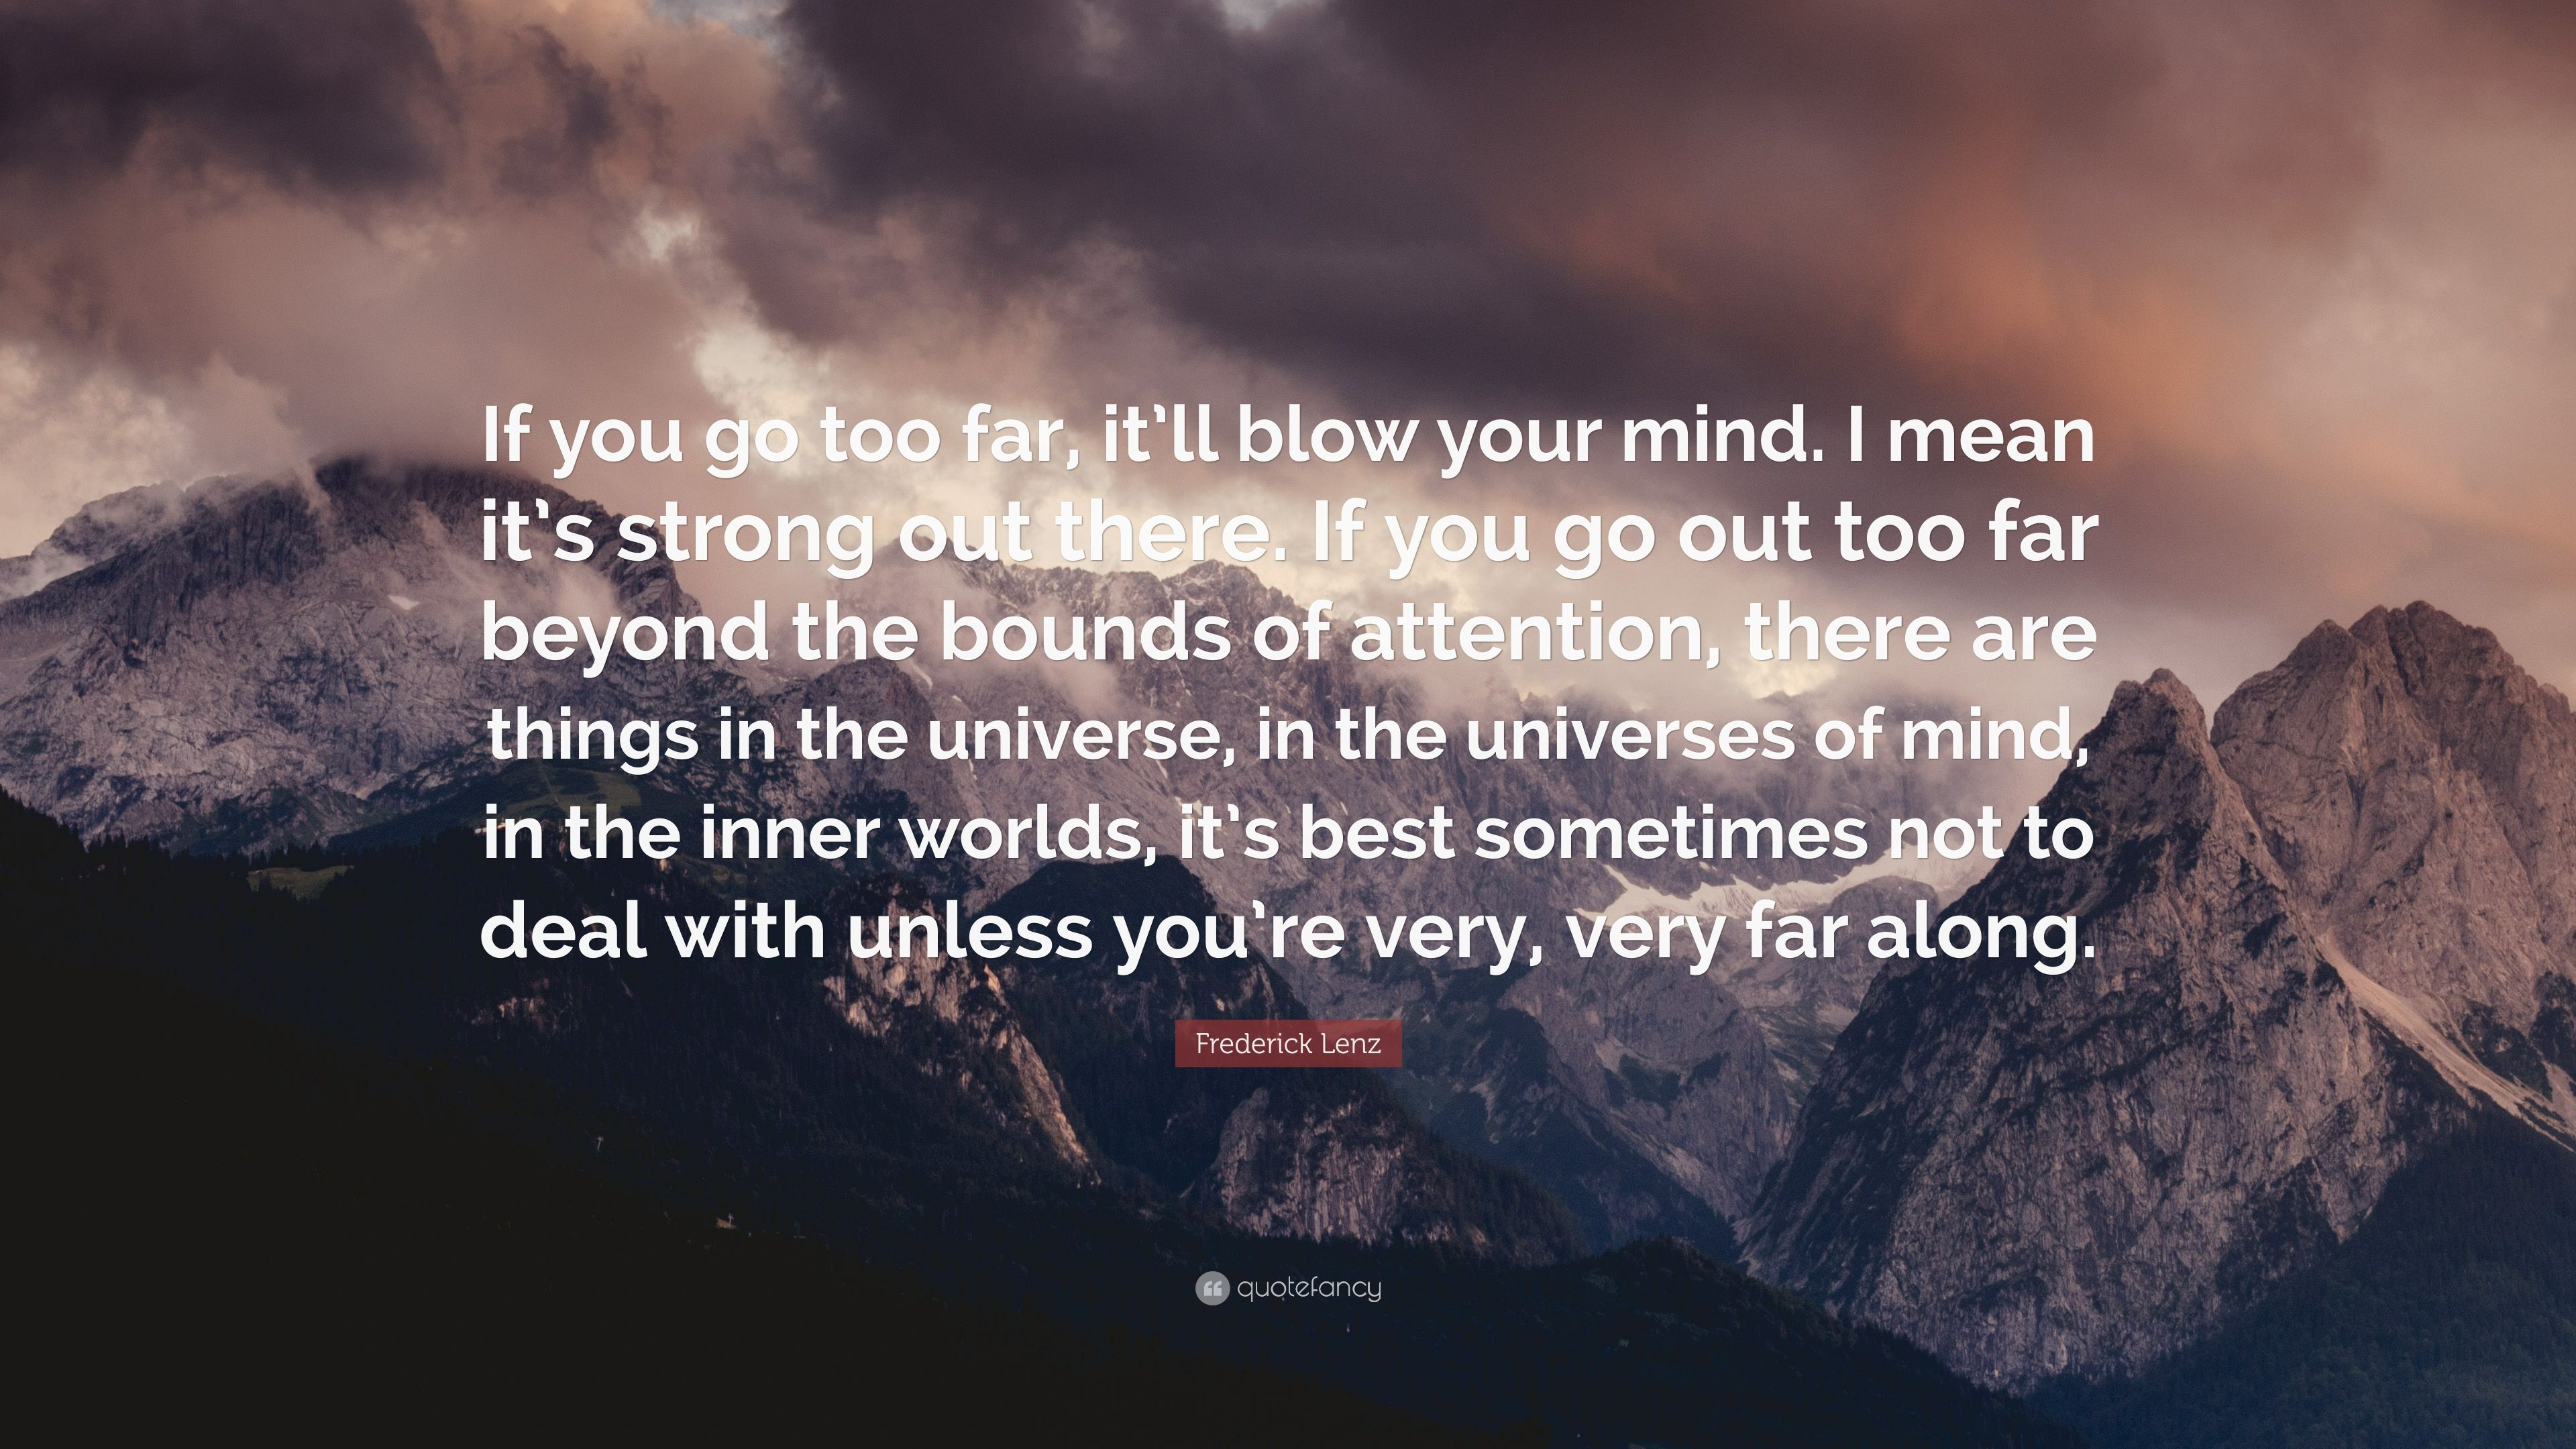 what does blow your mind mean